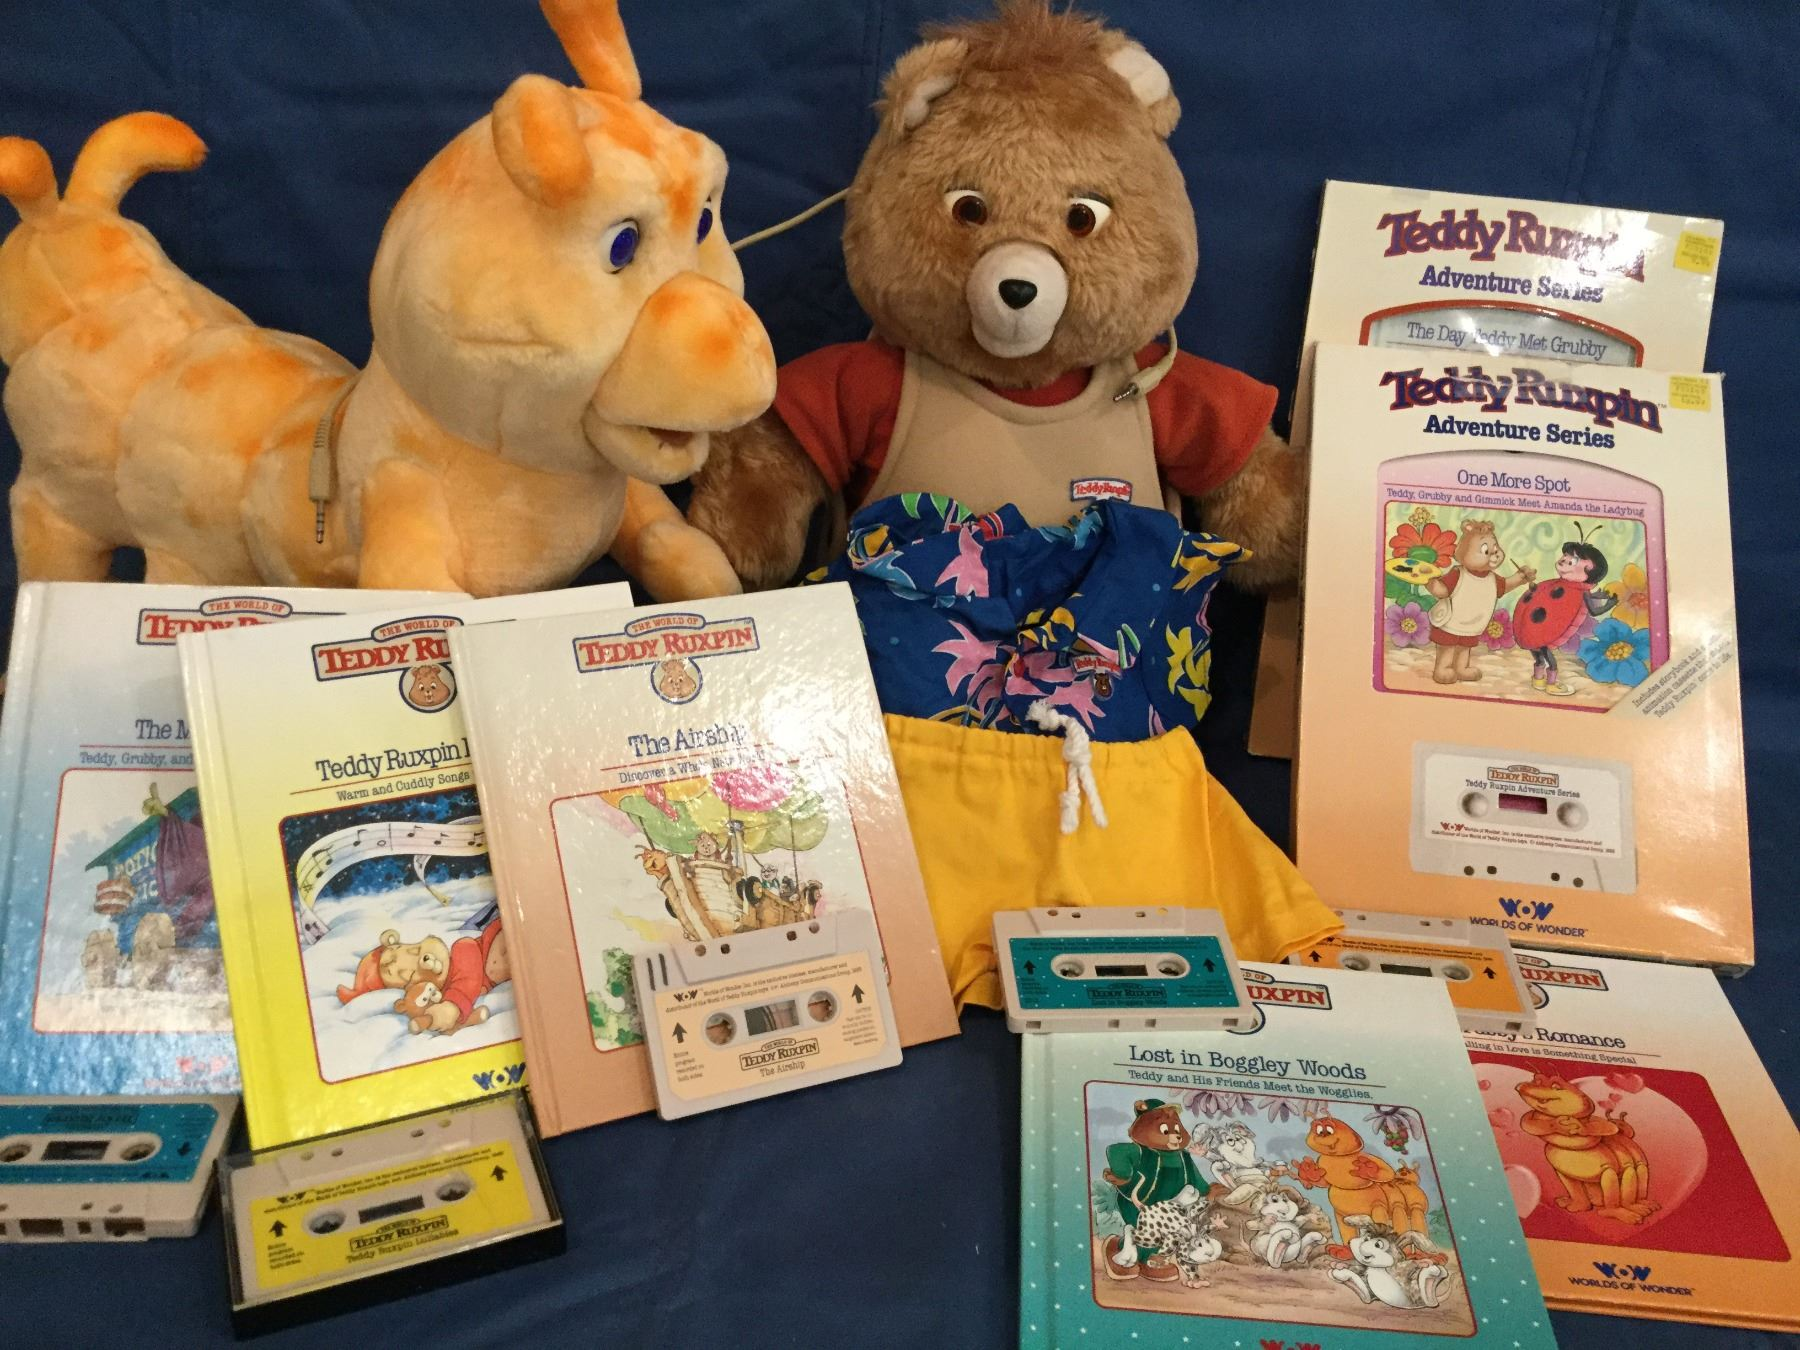 Book and Tape Double Grubby Teddy Ruxpin